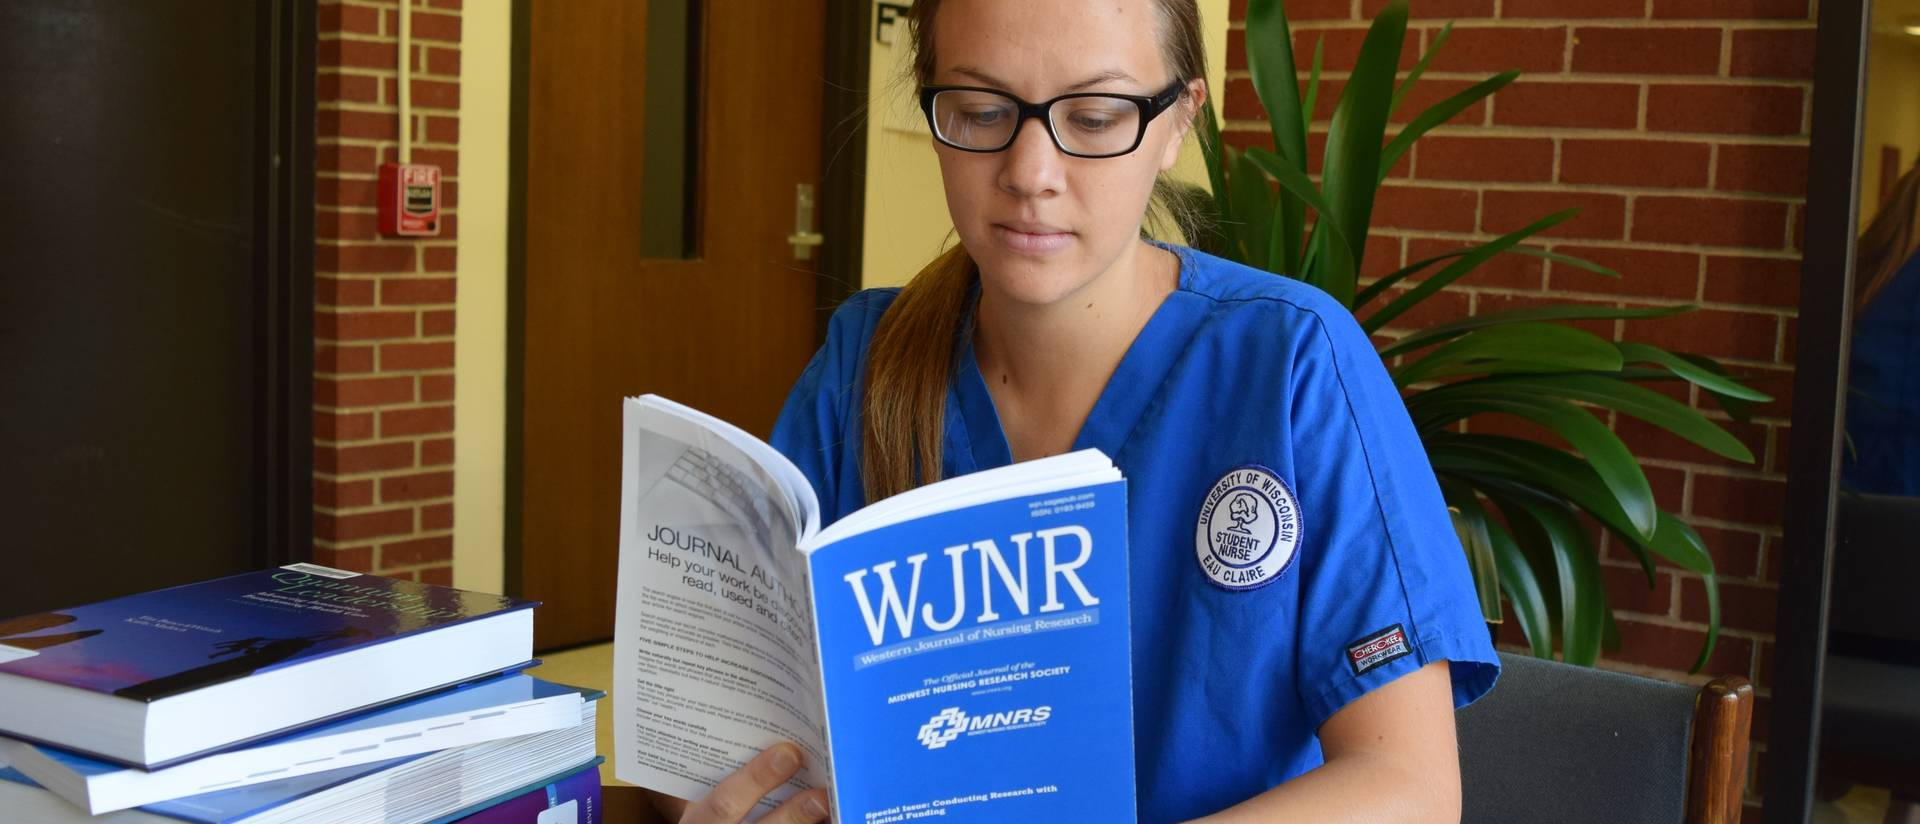 Student reading nursing journal article